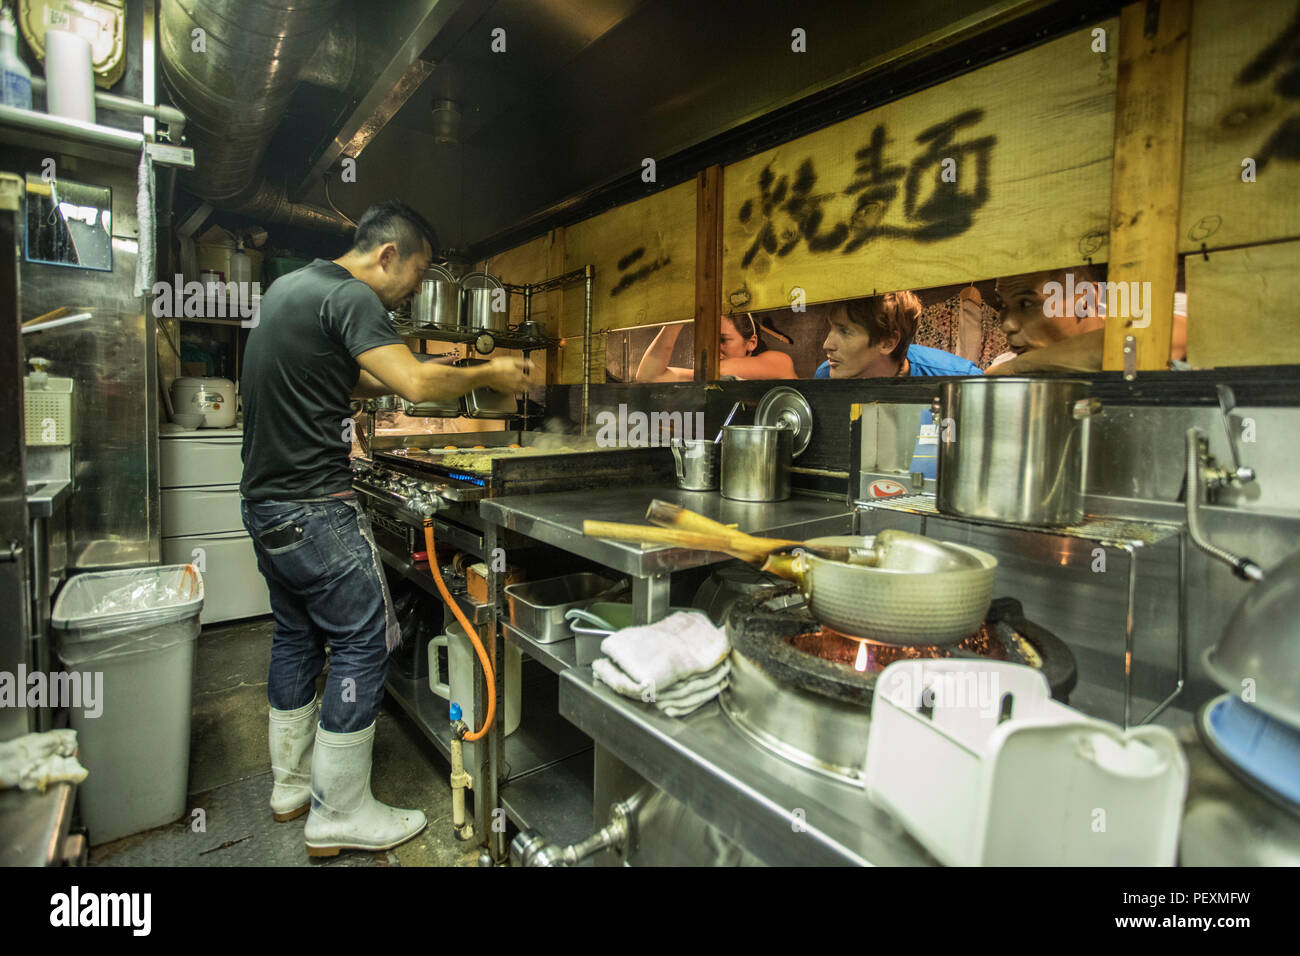 Worker Cooking In Ramen Shop Tokyo Japan Stock Photo 215716477